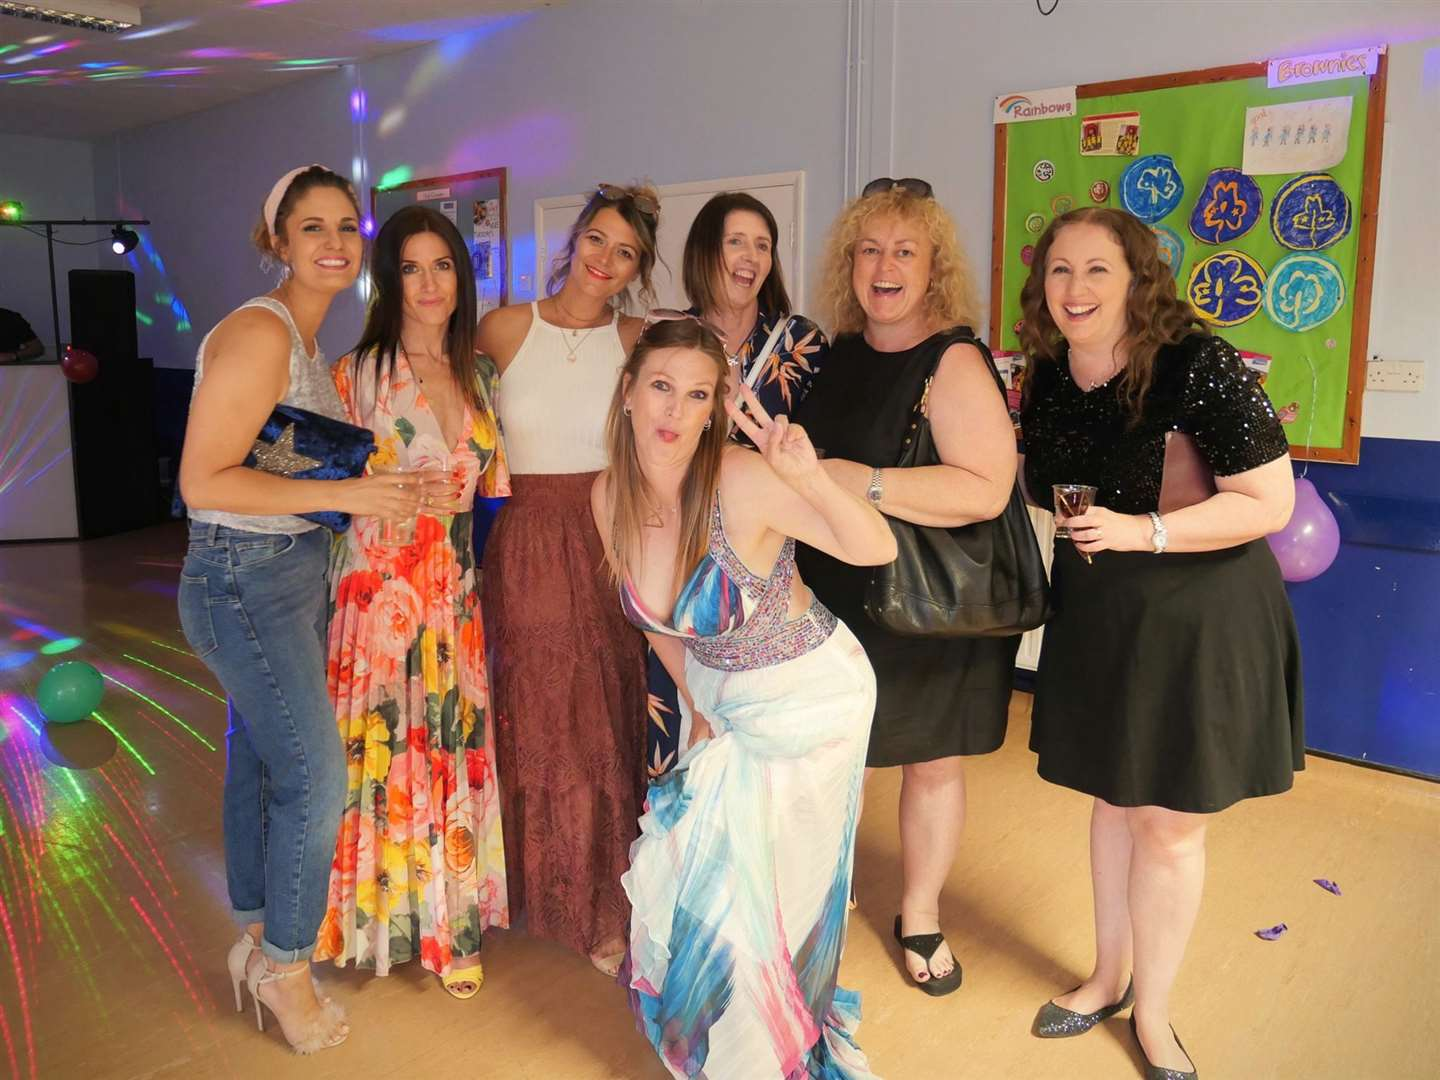 Beth Purvis on her 40th birthday, just two years ago, with friends, from left, Rachel Roberts, Madeleine Sanders, Lisa Menzella, Karen Tait, Darian Compton and Emma Stevens (48887736)